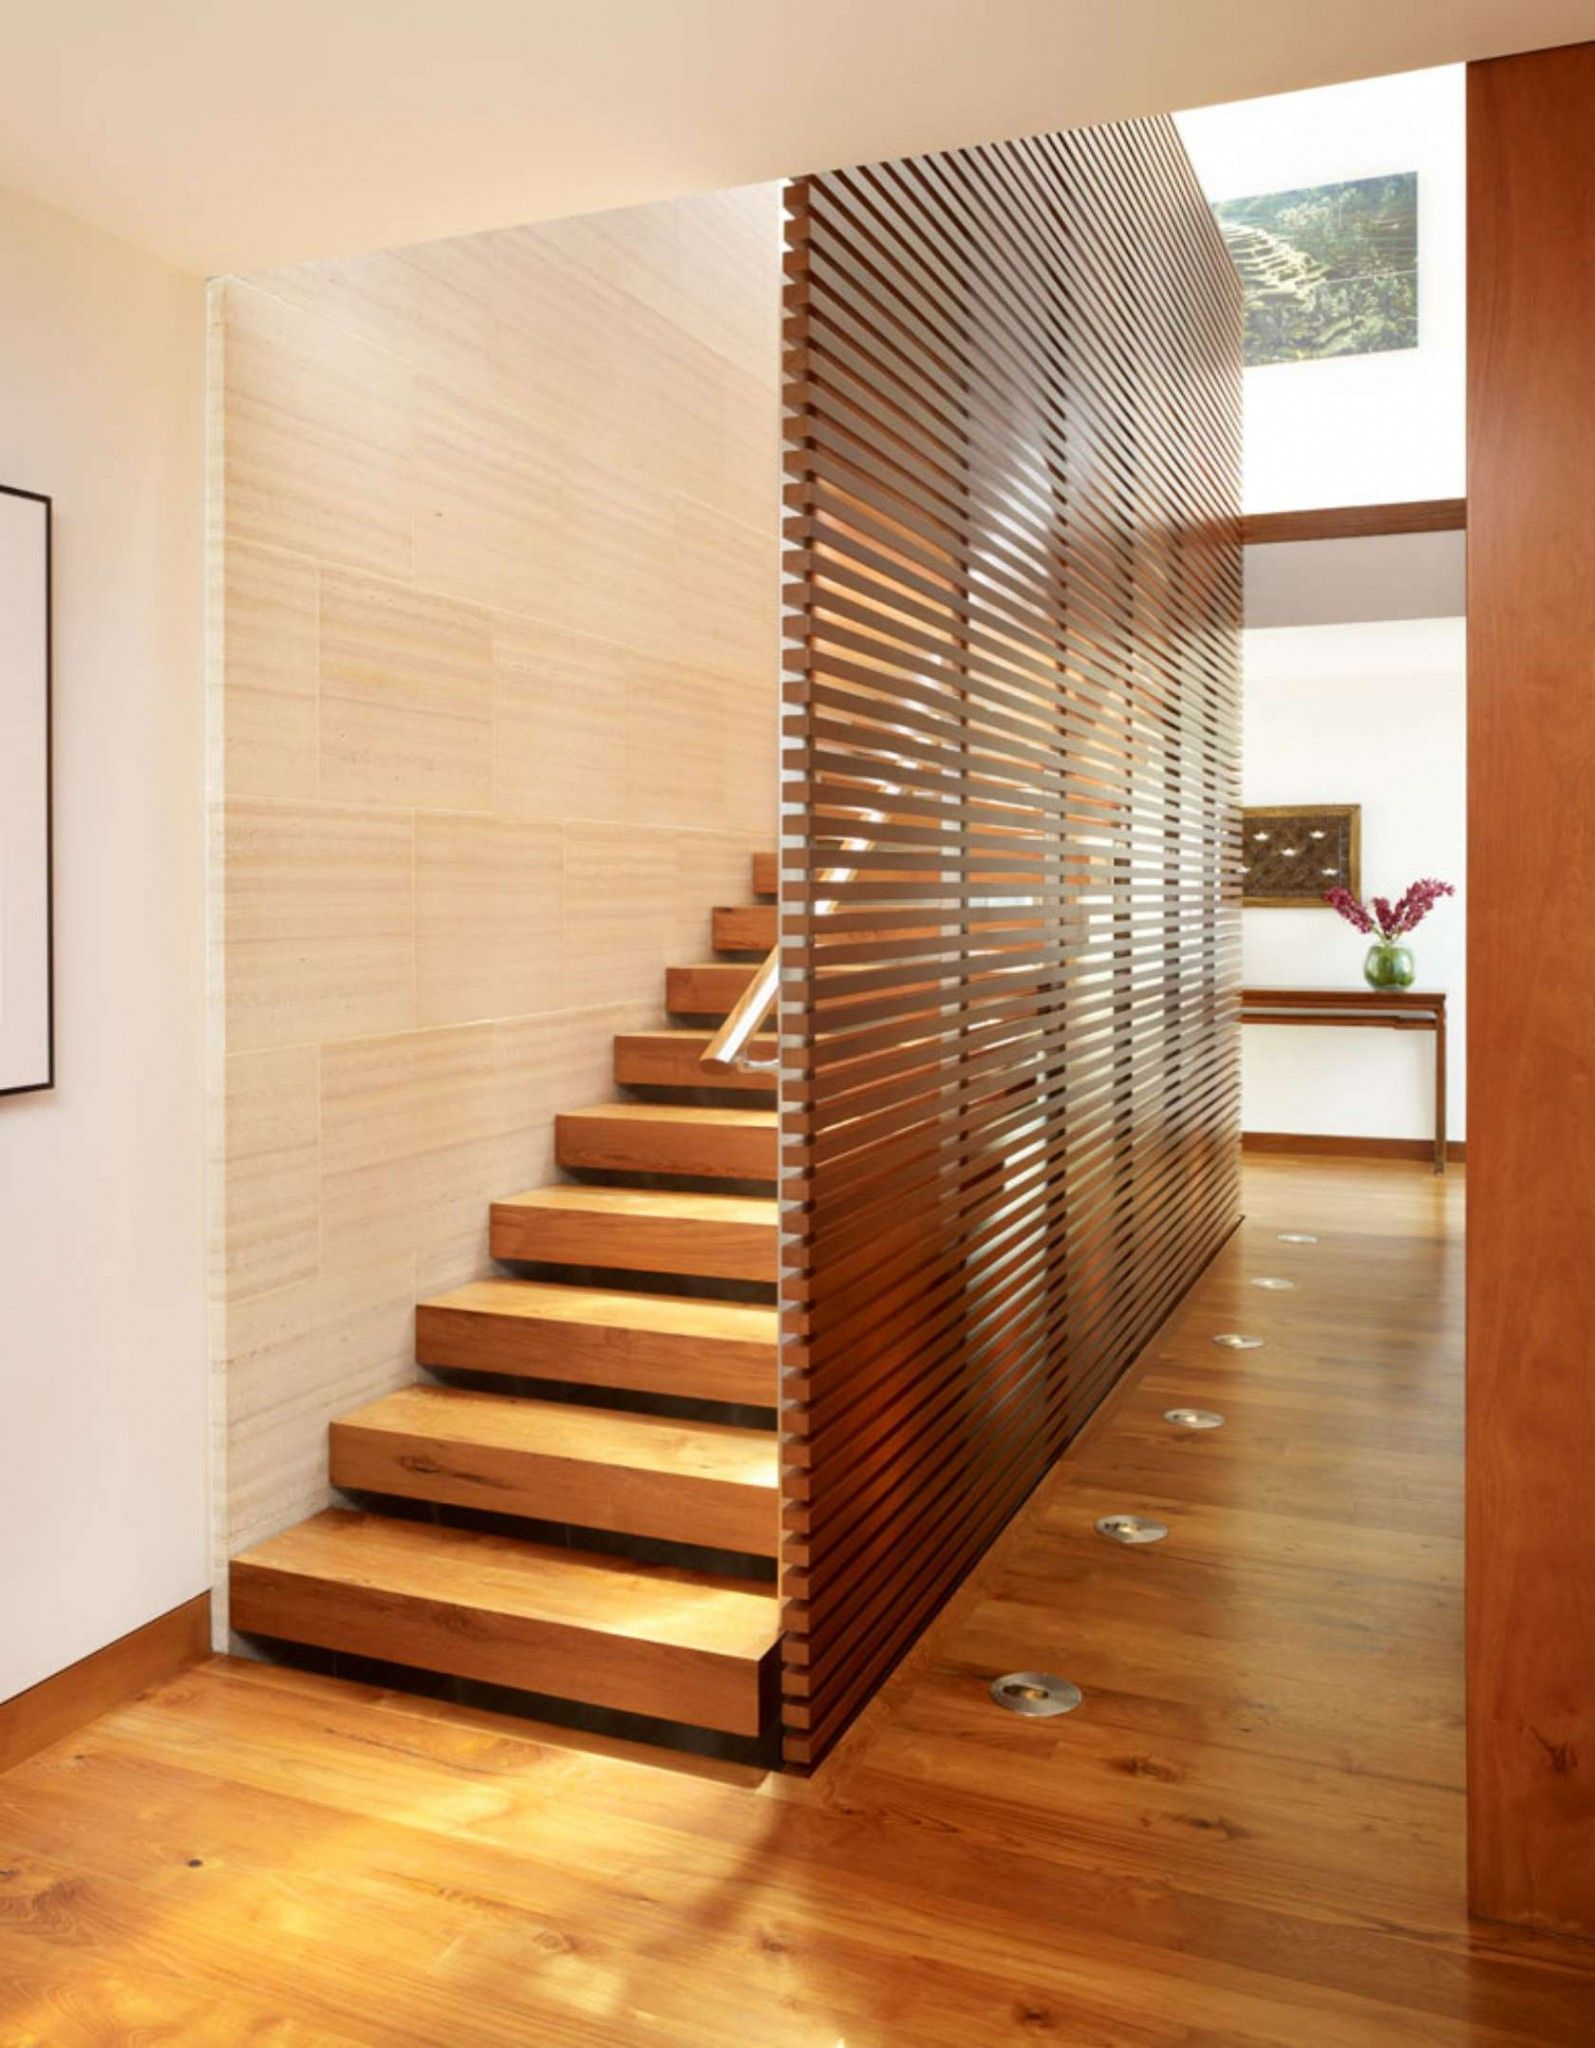 Stairway Designs Modern Interior Staircase Materials Photo